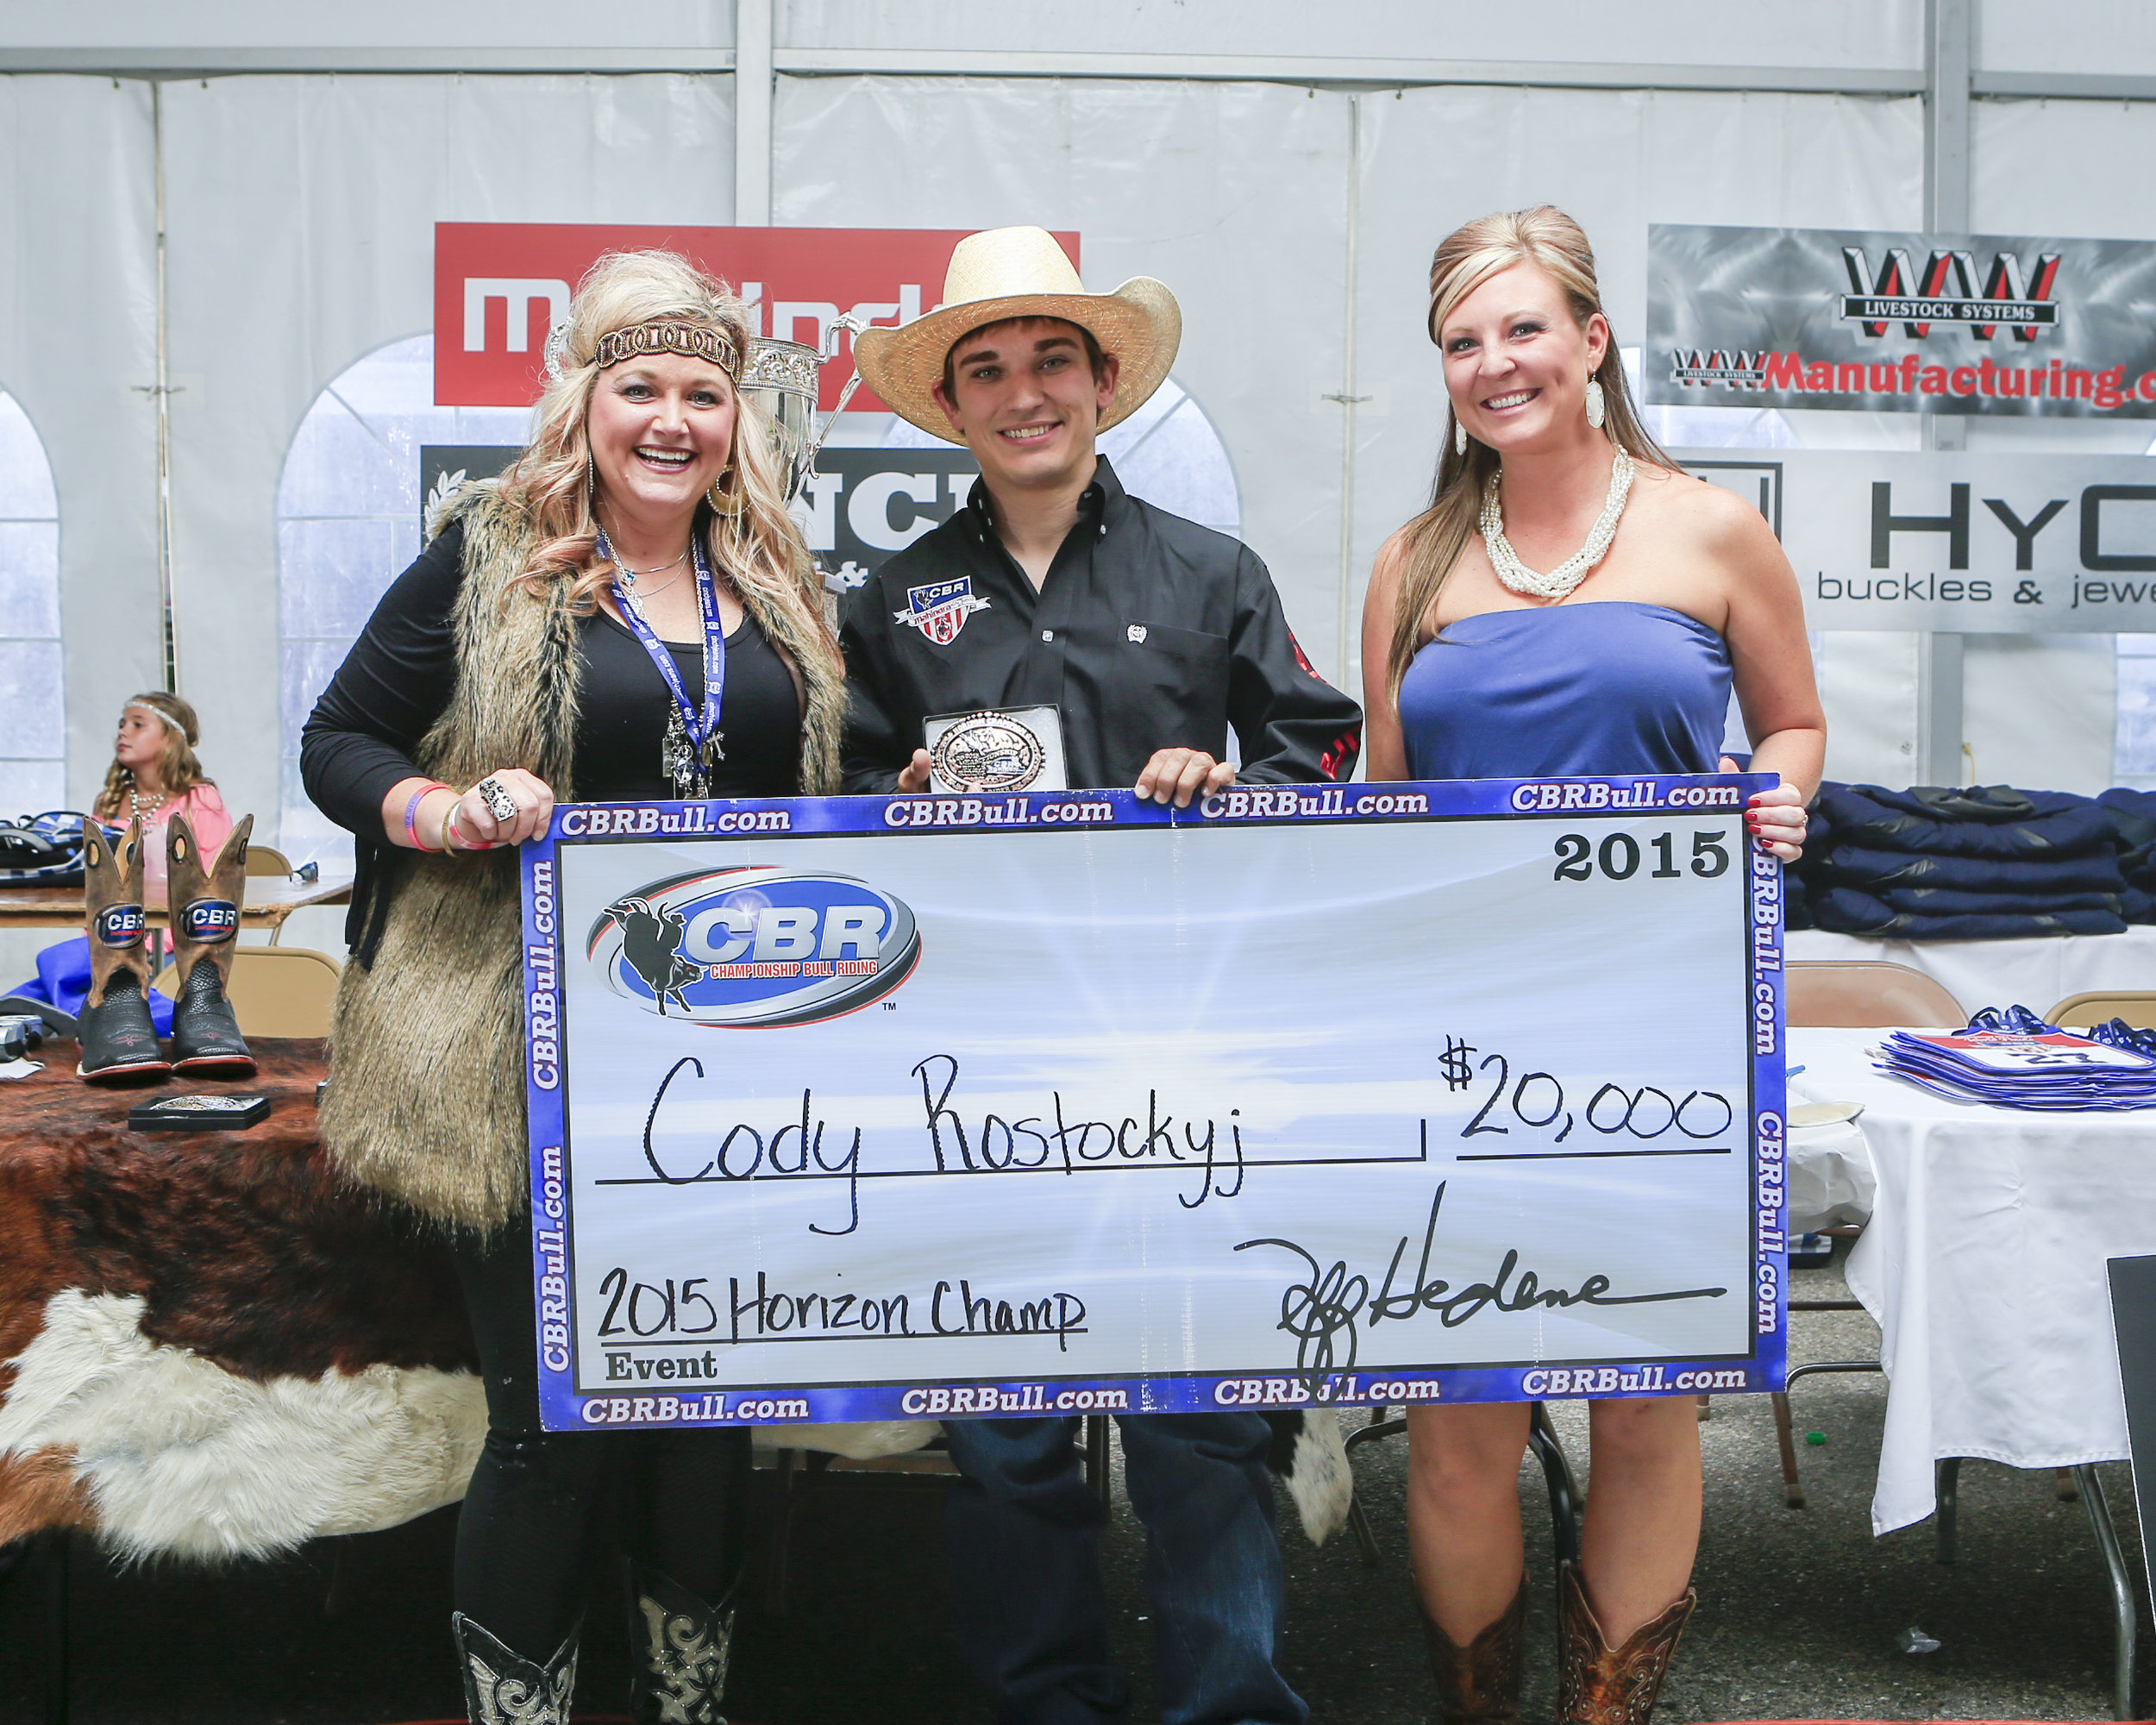 Rostockyj on a Roll began in 2015 with the CBR Horizon Series year-end championship, accepting the check from Cicily Cross Blair and Lindsay Ray.